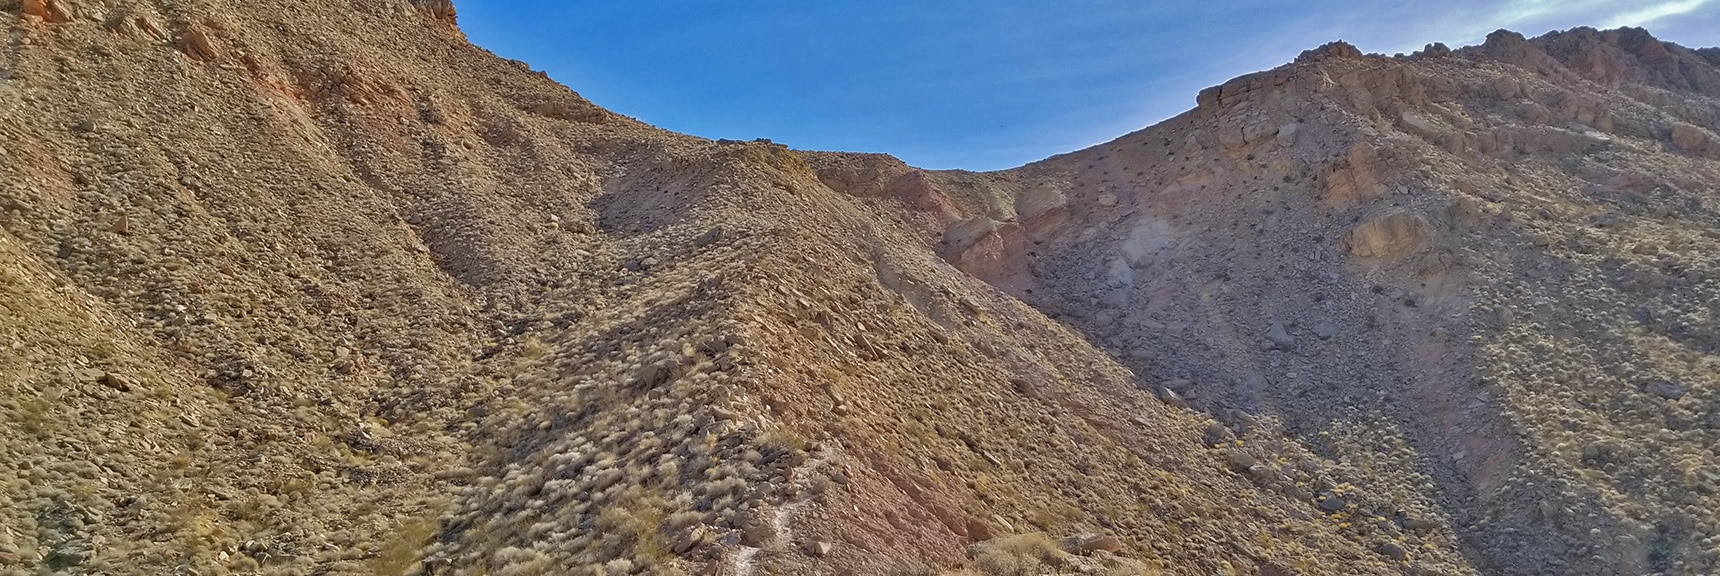 Ascending a Ridge Toward a Spectacular Bowl of Fire Overlook   Anniversary Narrows   Muddy Mountains Wilderness, Nevada